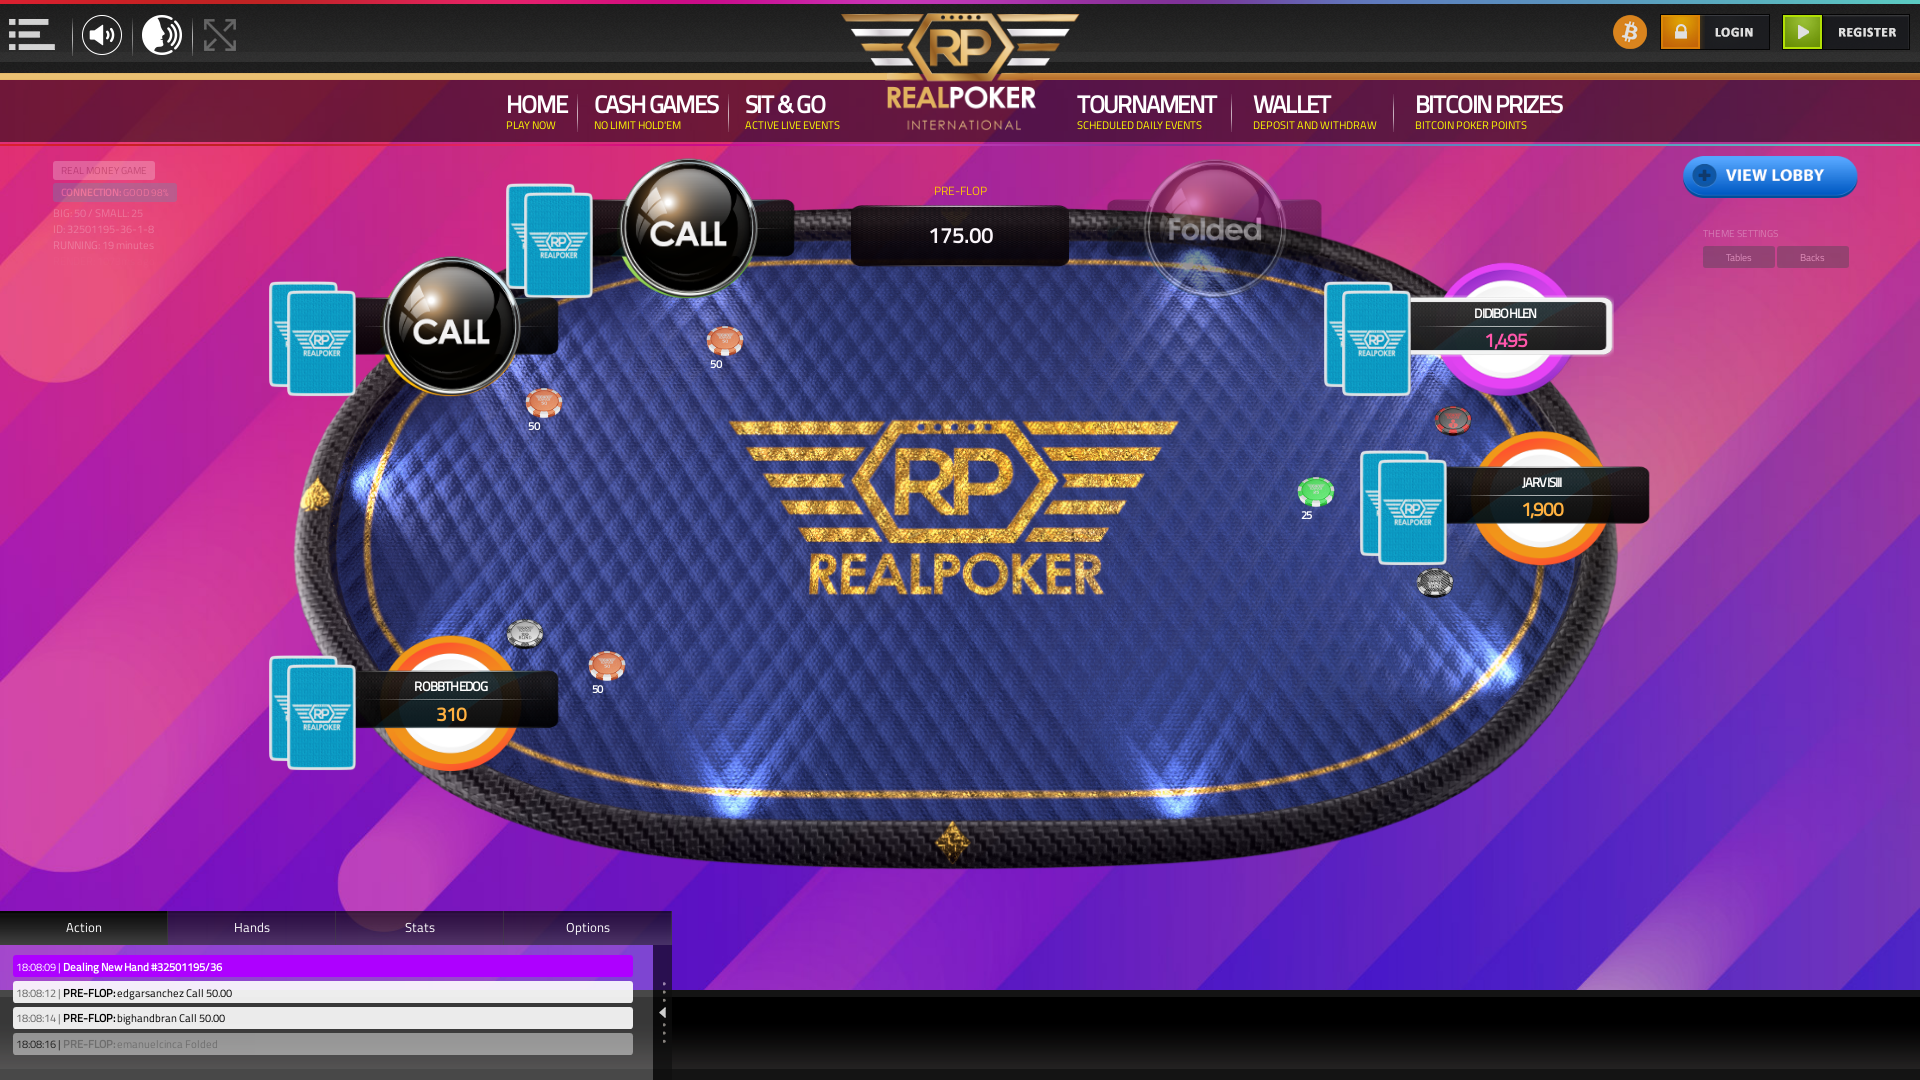 Dublin Casino Bitcoin Poker